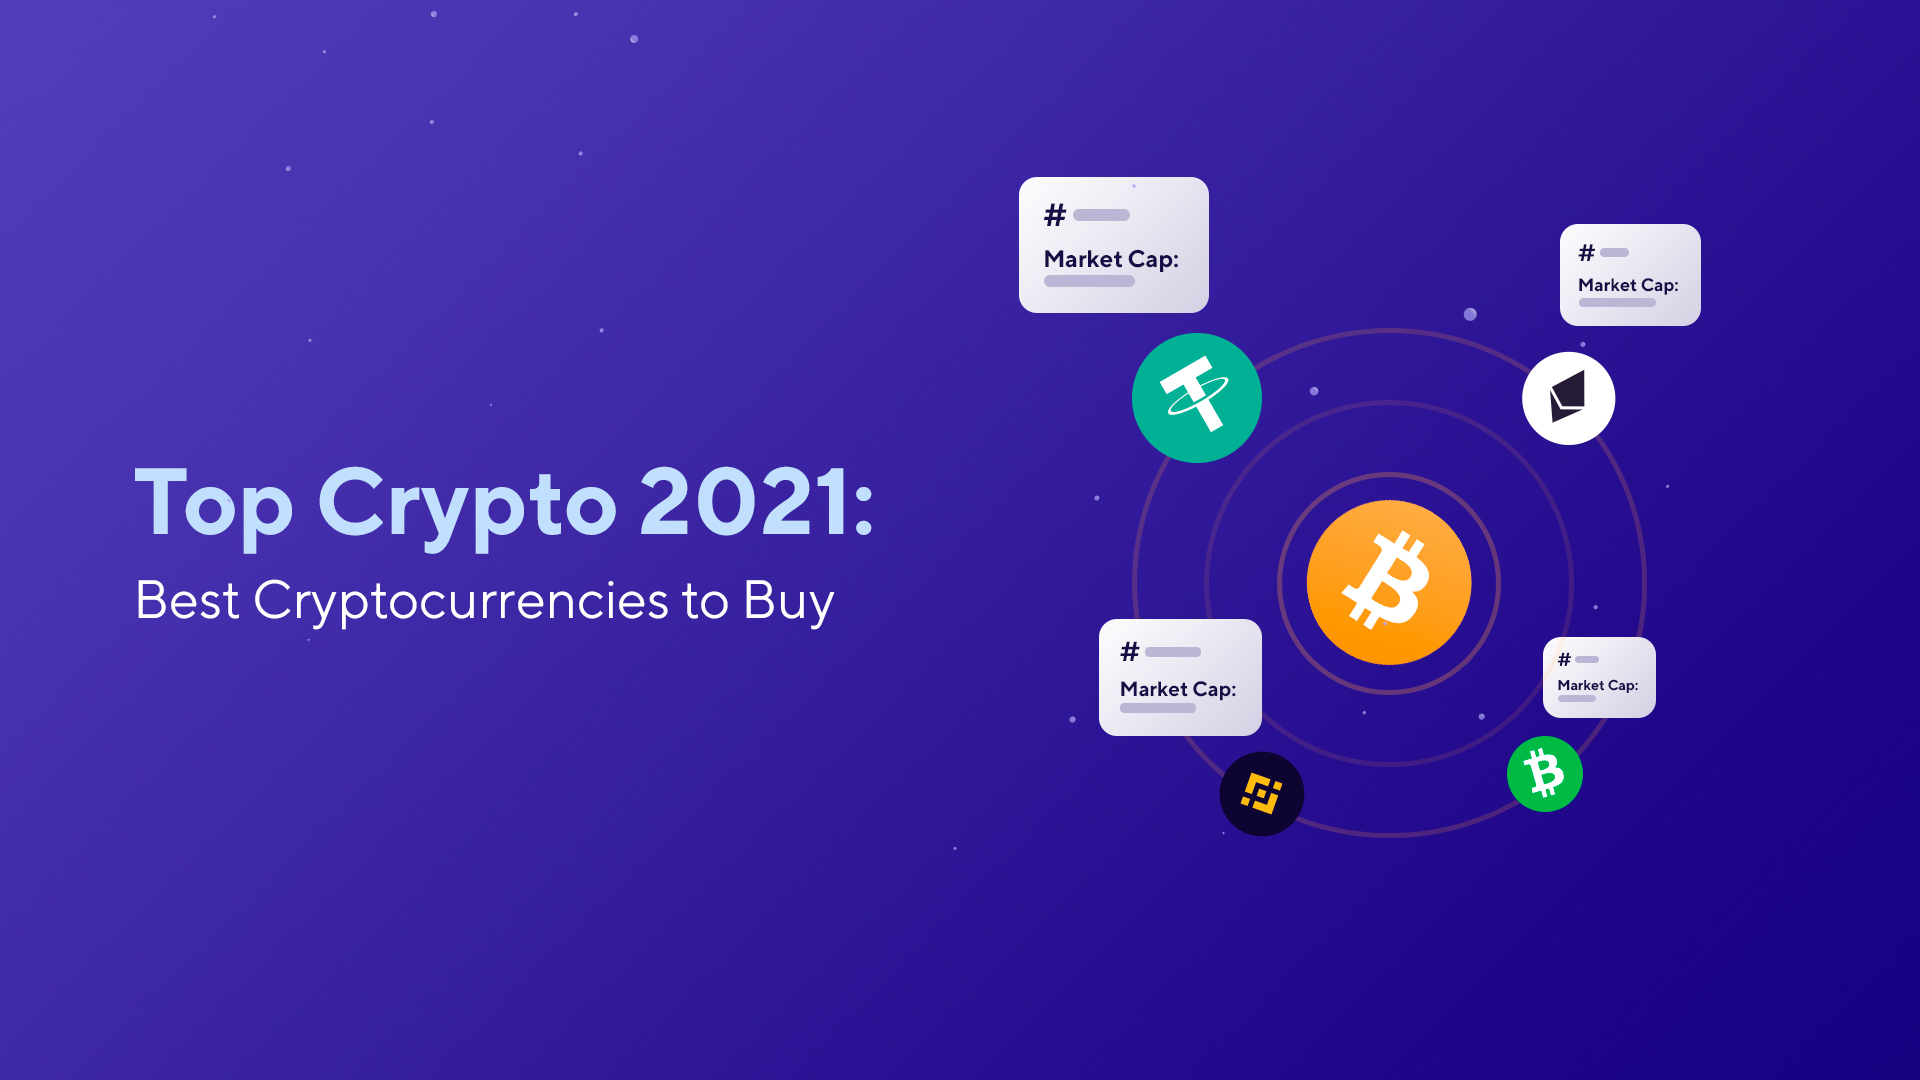 Top Cryptocurrencies 2021: Best Crypto to Buy